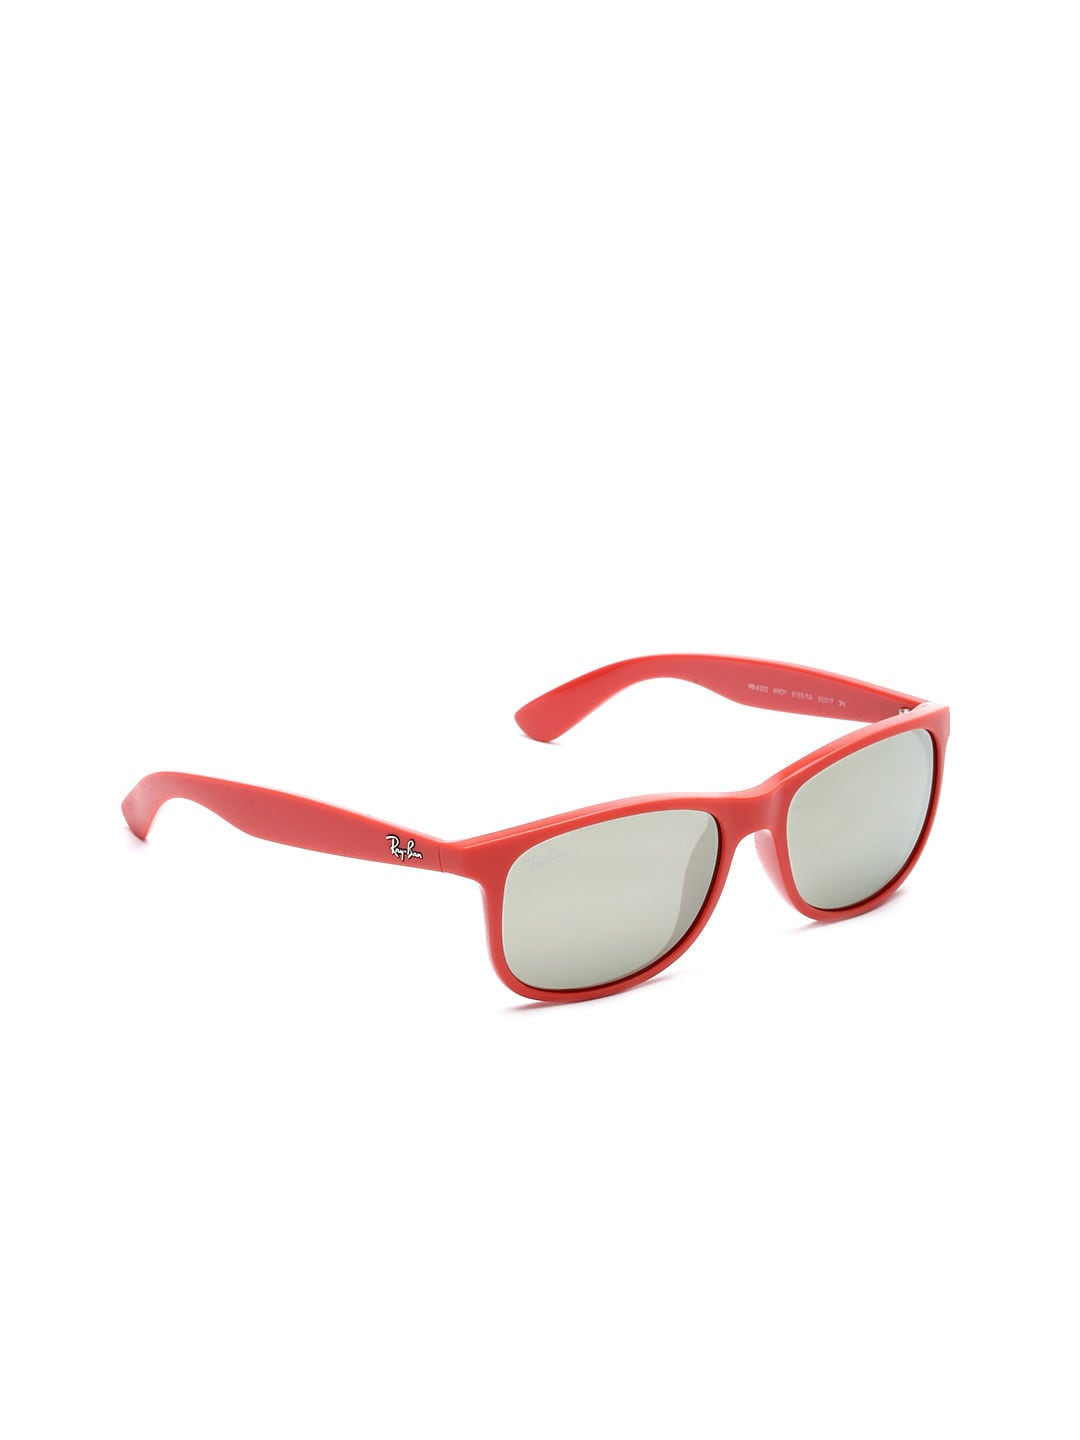 5e5588156c Ray Ban Rectangle Sunglasses - Buy Ray Ban Rectangle Sunglasses online in  India